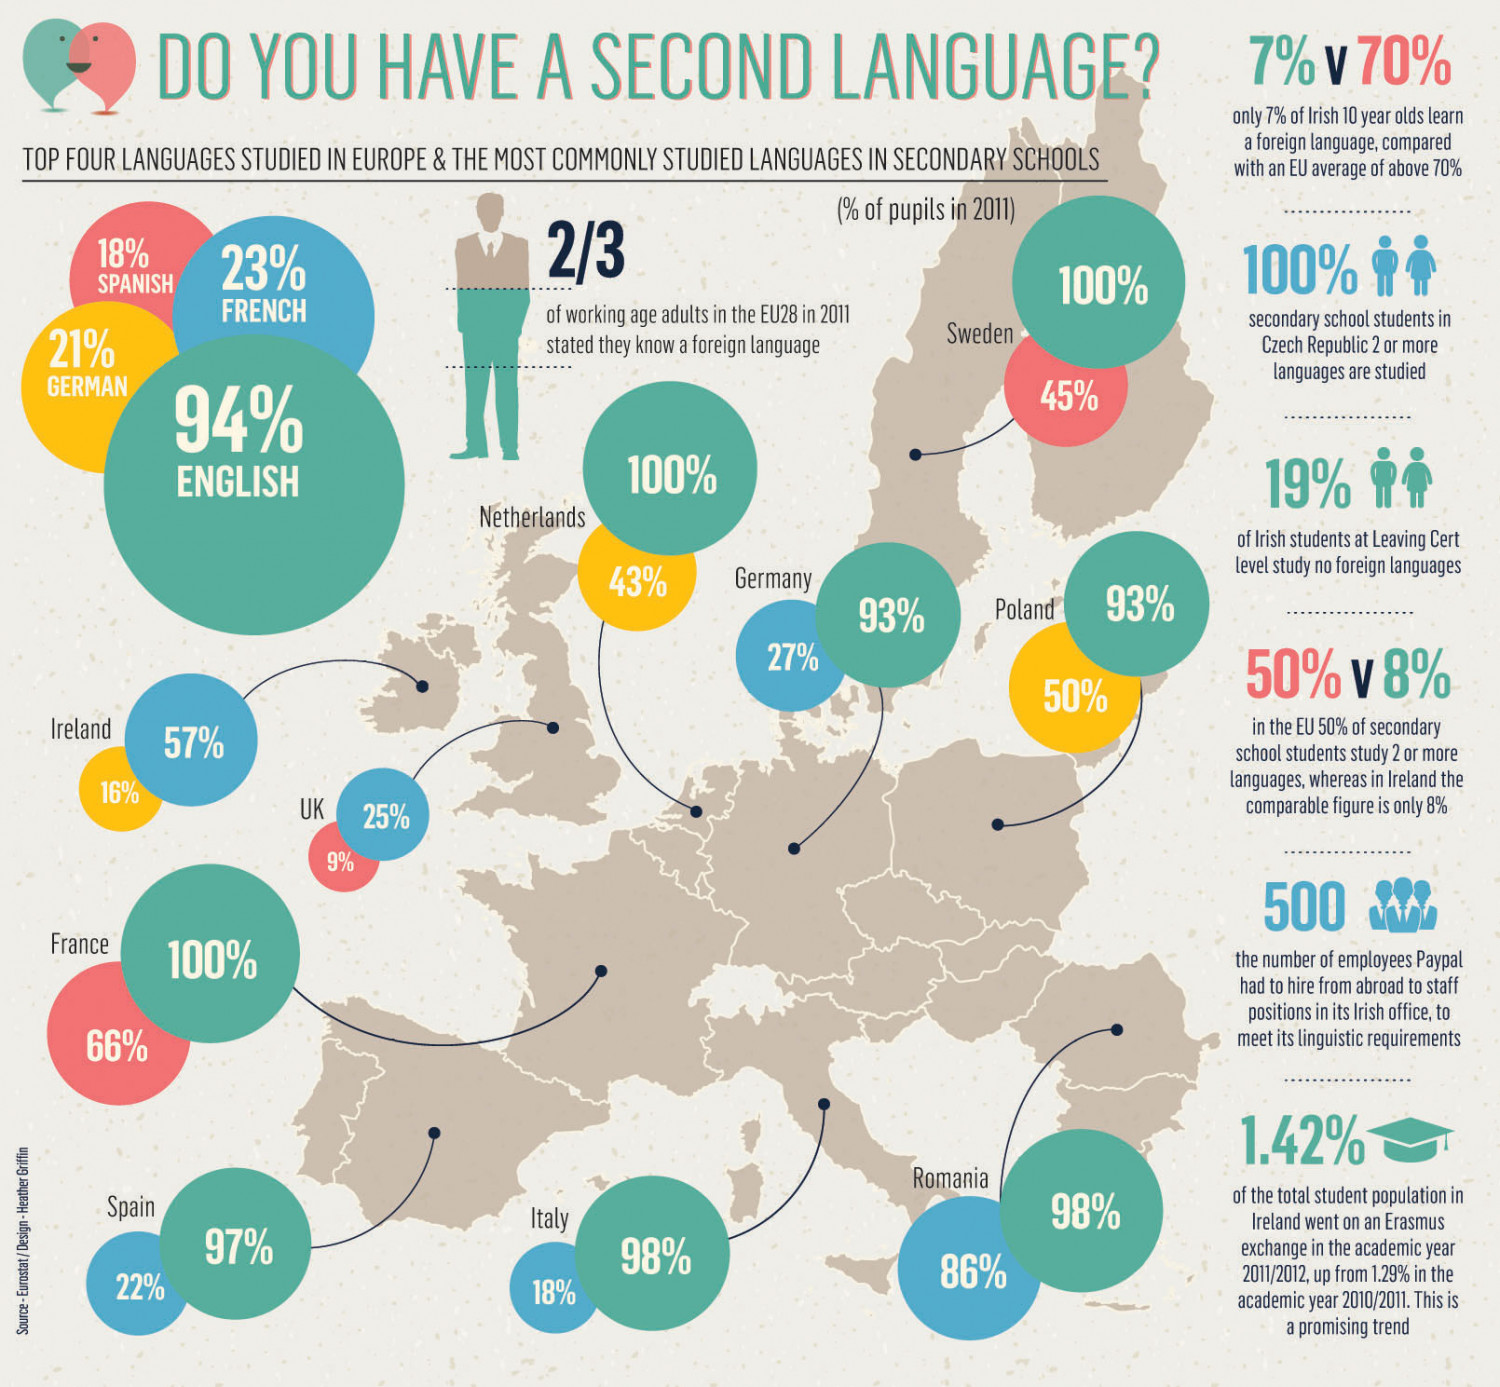 Do you have a second language? Infographic